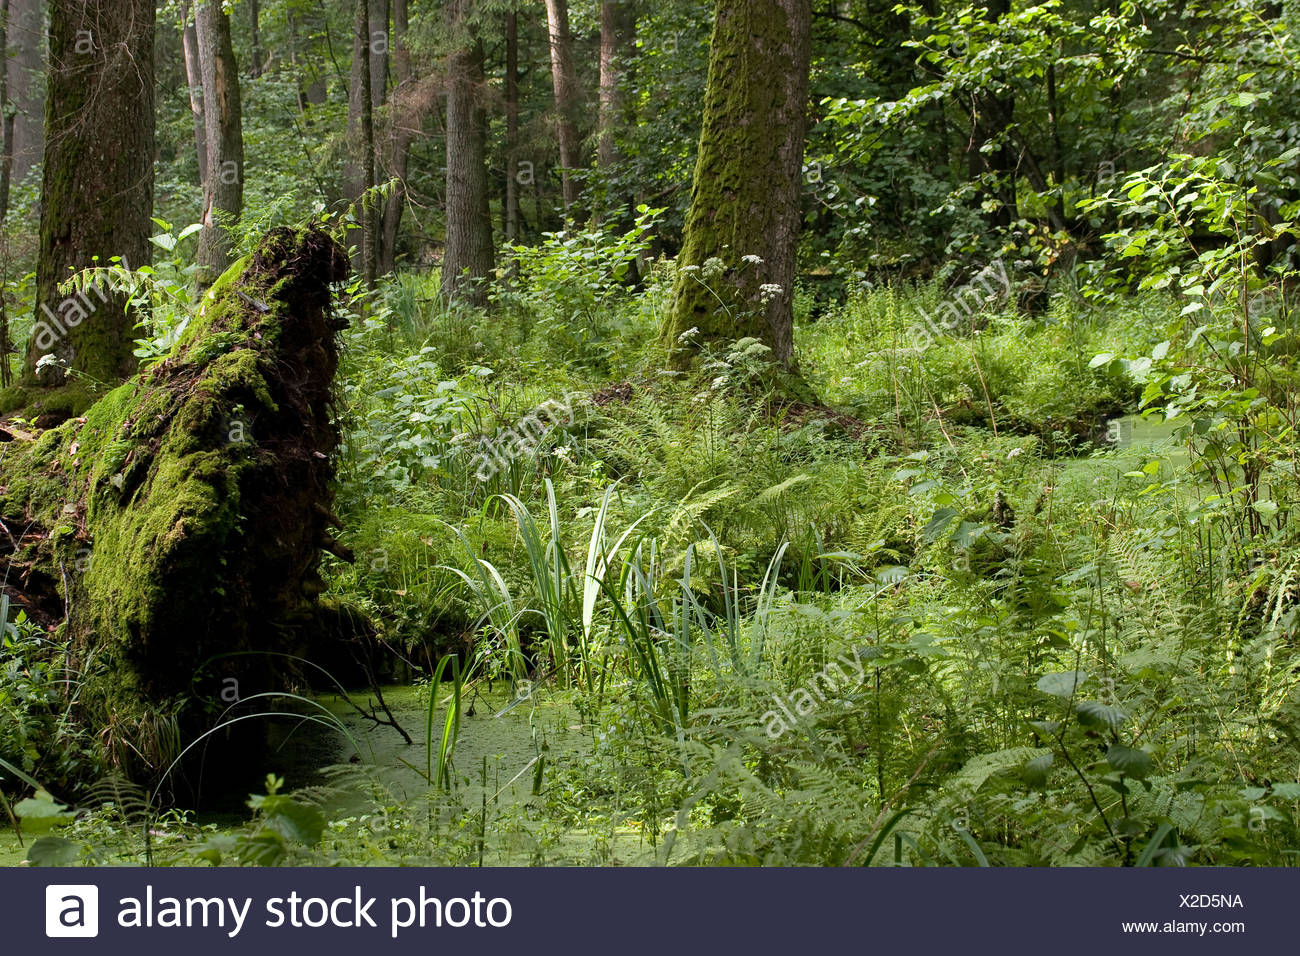 Impression of the soaking wet Alder Swamp in the strict reserve of the Bialowieza National Park. Stock Photo